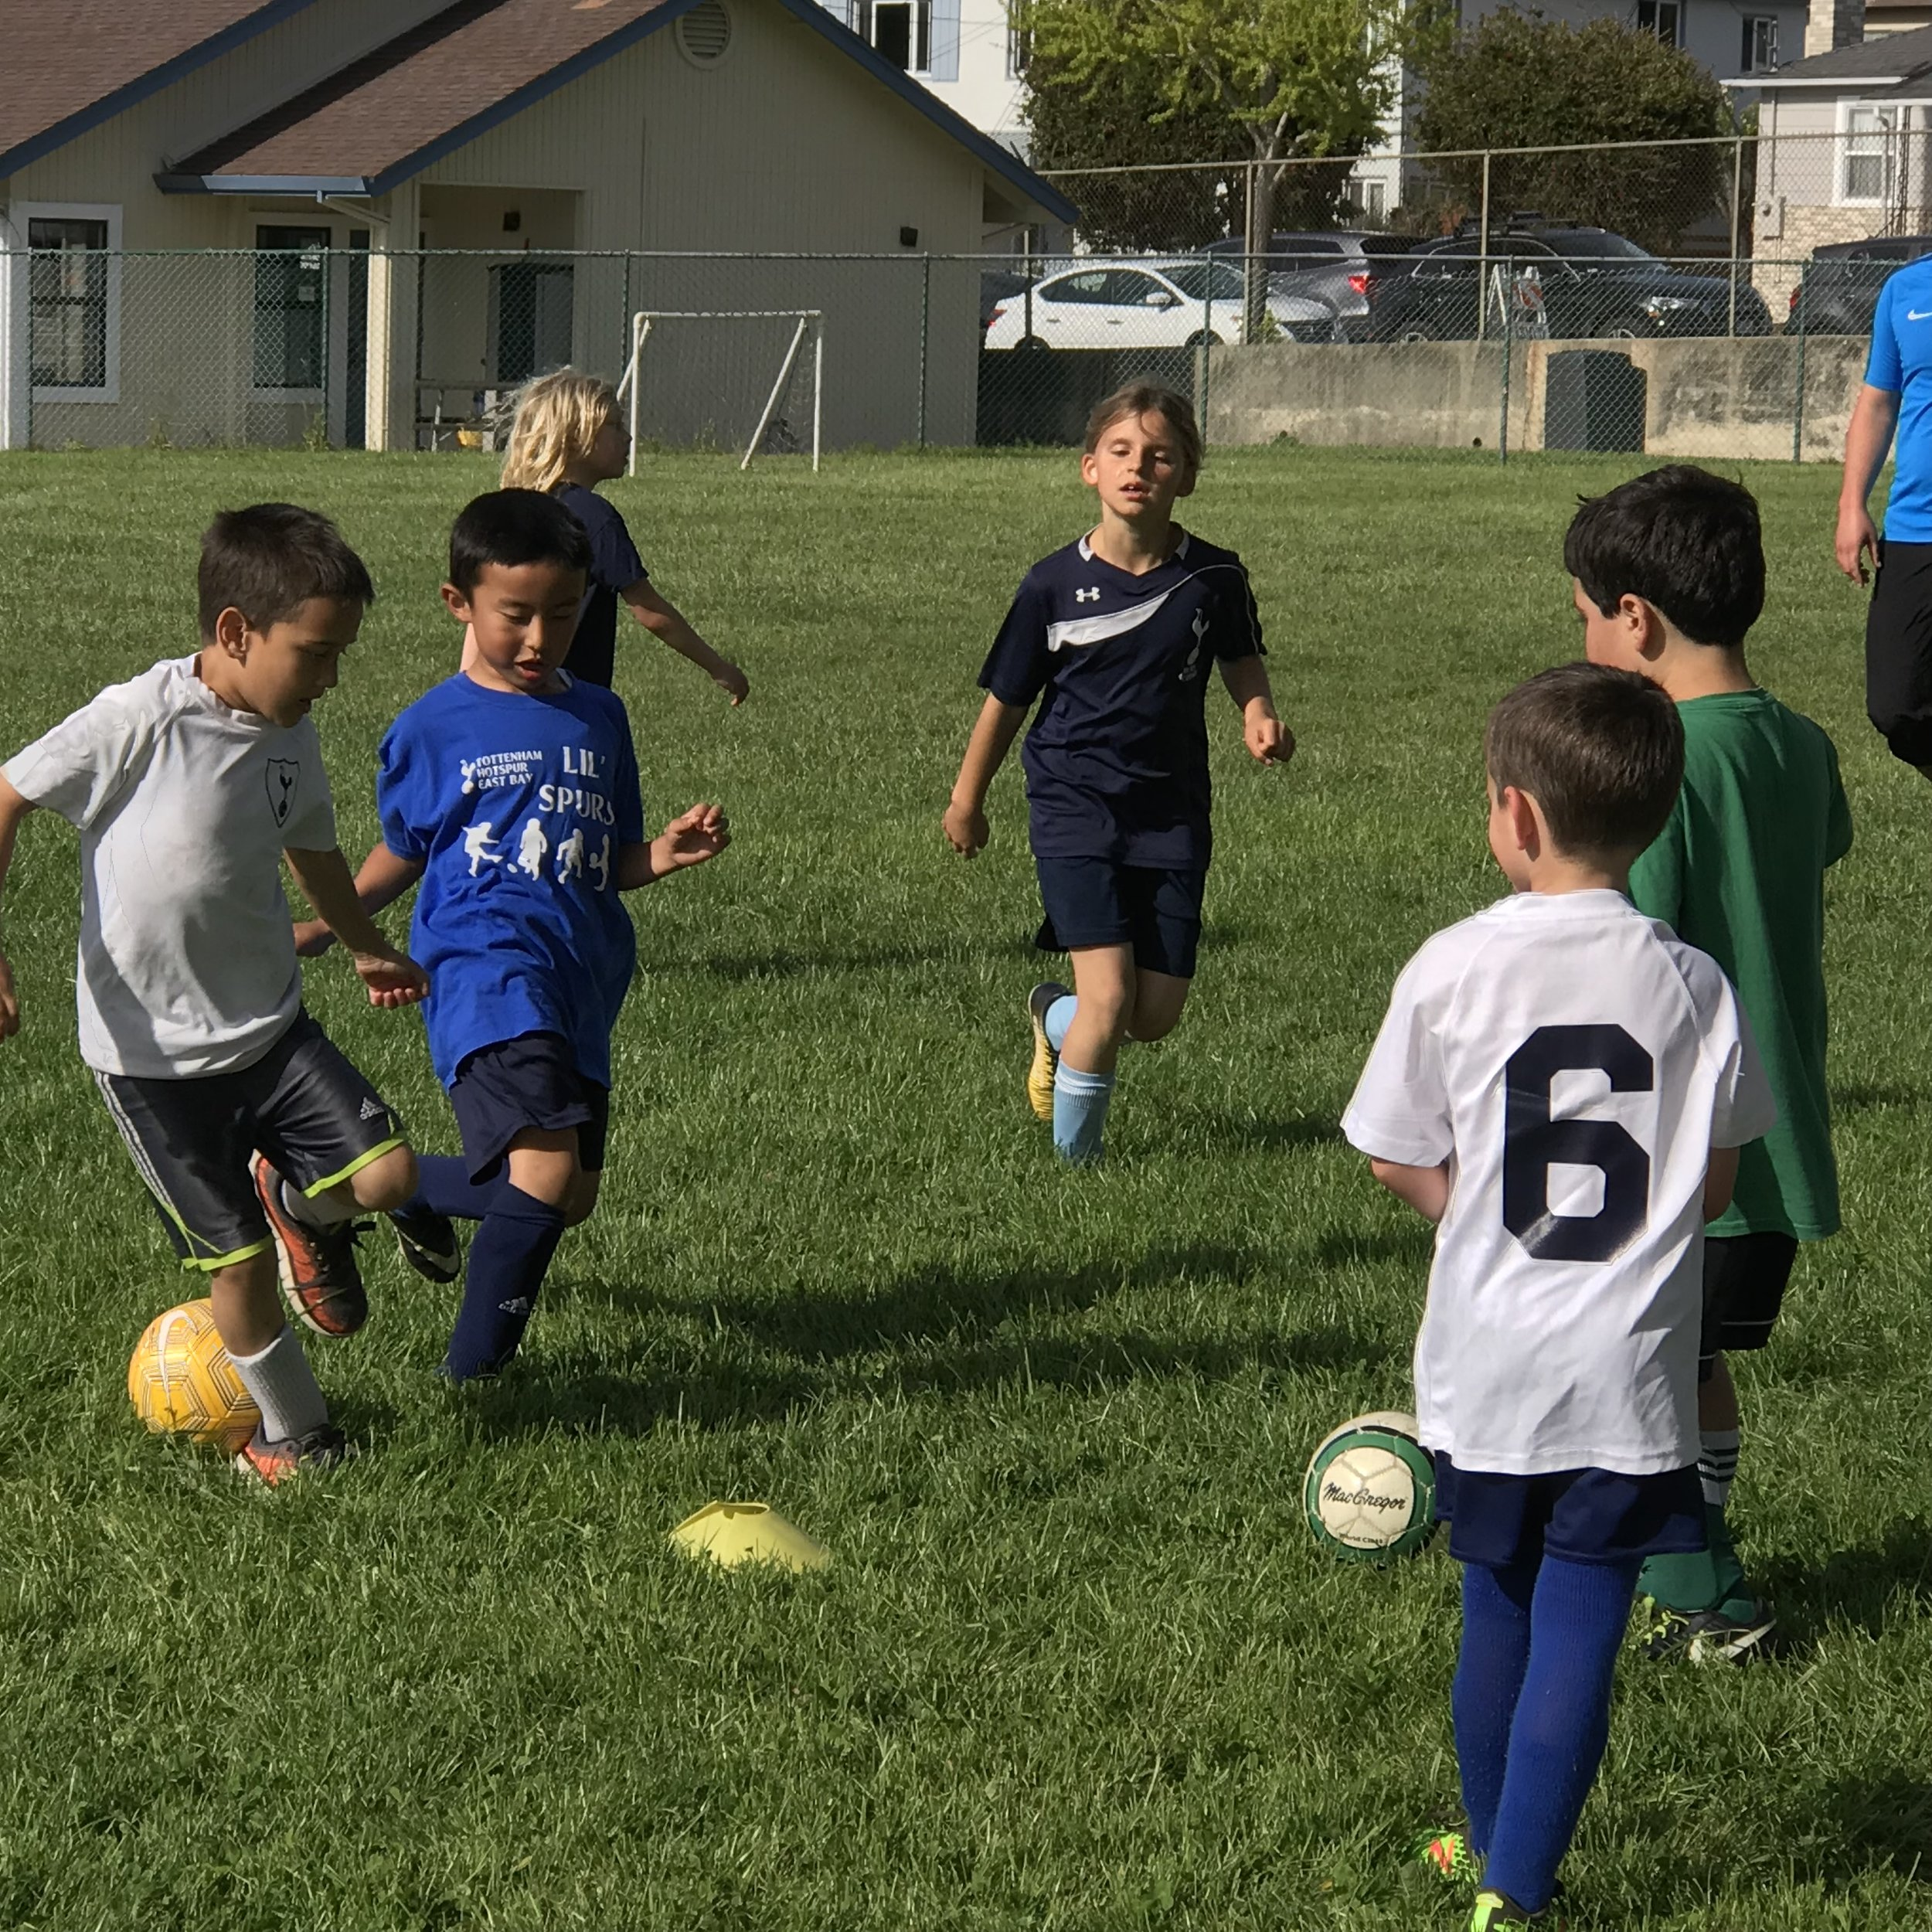 Spurs Rec Soccer - Our recreational youth soccer program provides a relaxed introduction to the sport, but with a more carefully vetted and prepared team of coaches than is customary in recreational soccer.